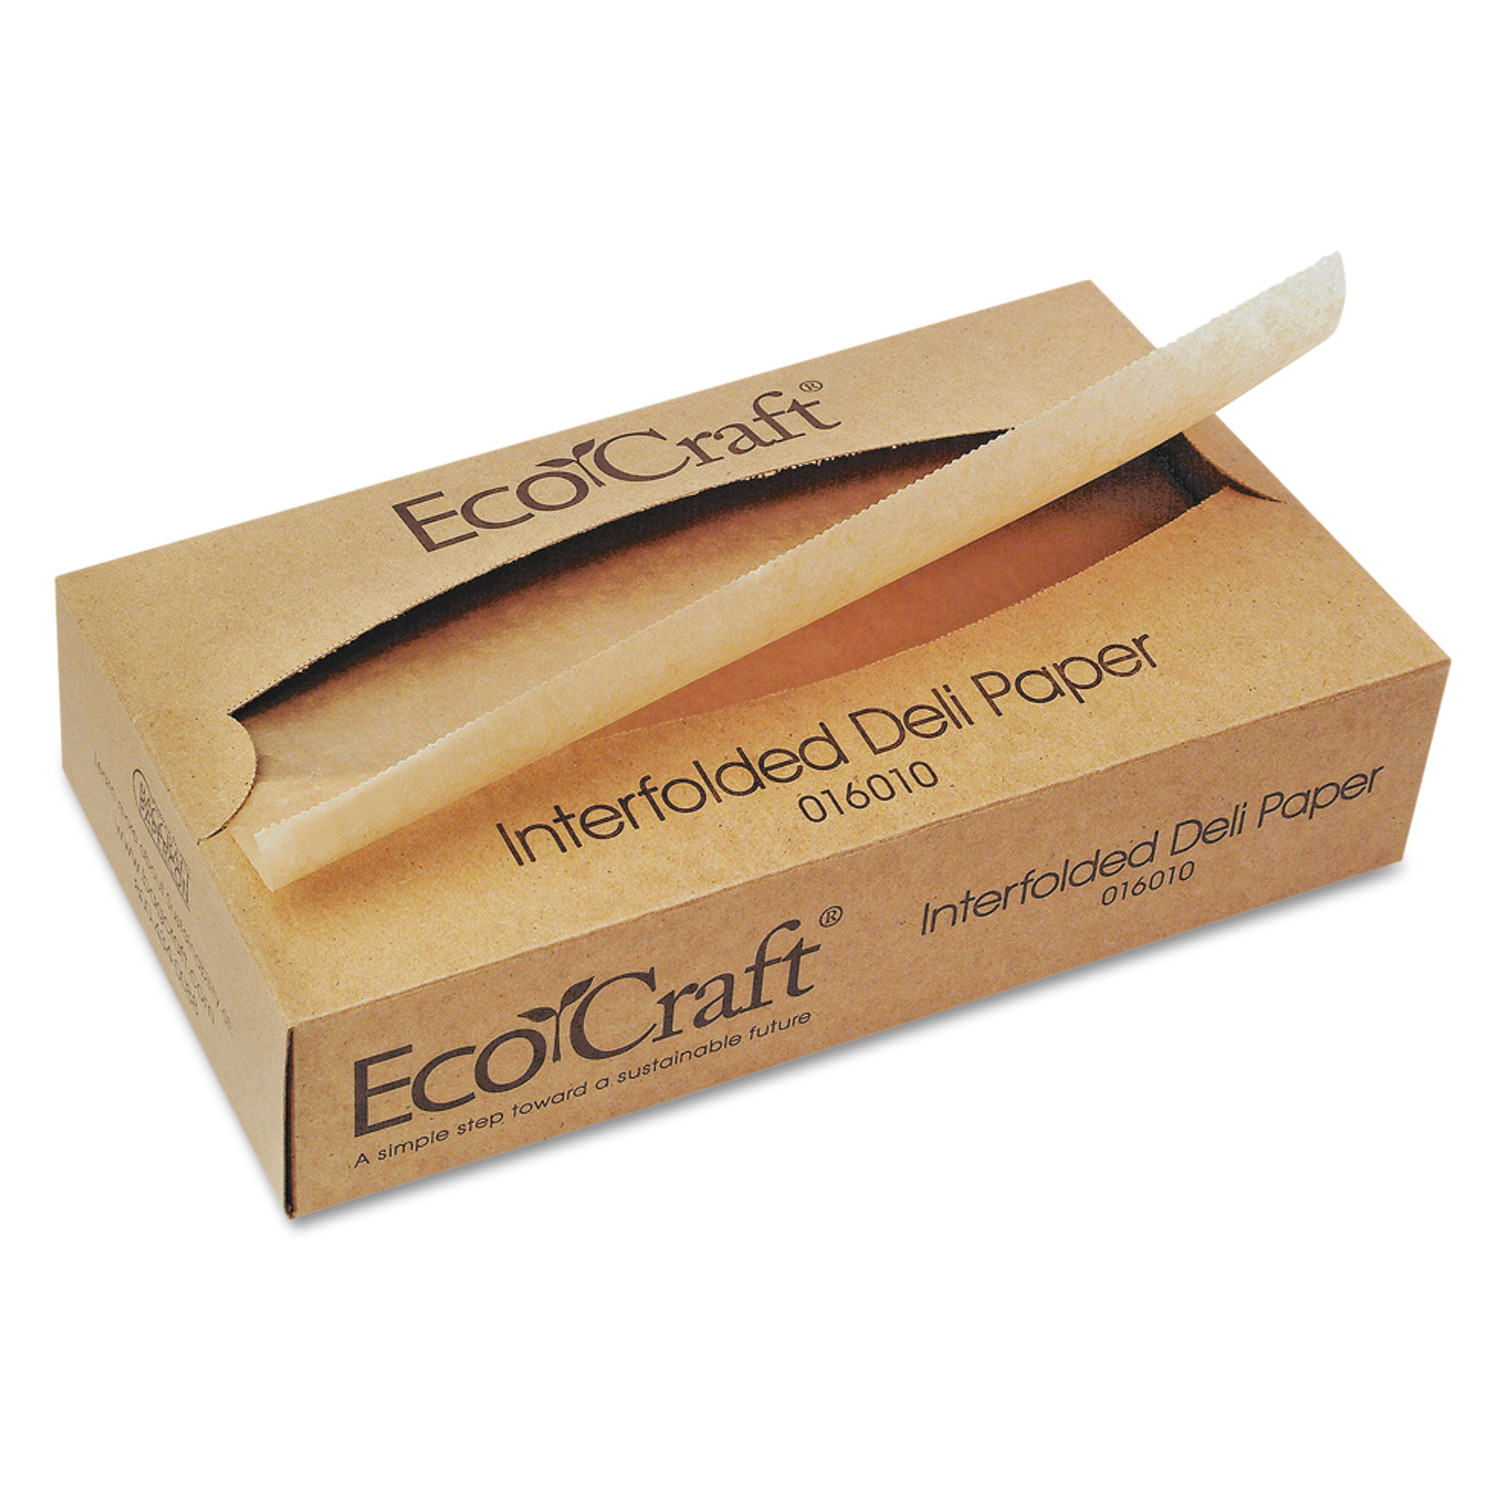 Bagcraft EcoCraft Interfolded Soy Wax Deli Sheets, 10 x 10 3/4, 500/Box, 12 Boxes/Carton -BGC016010